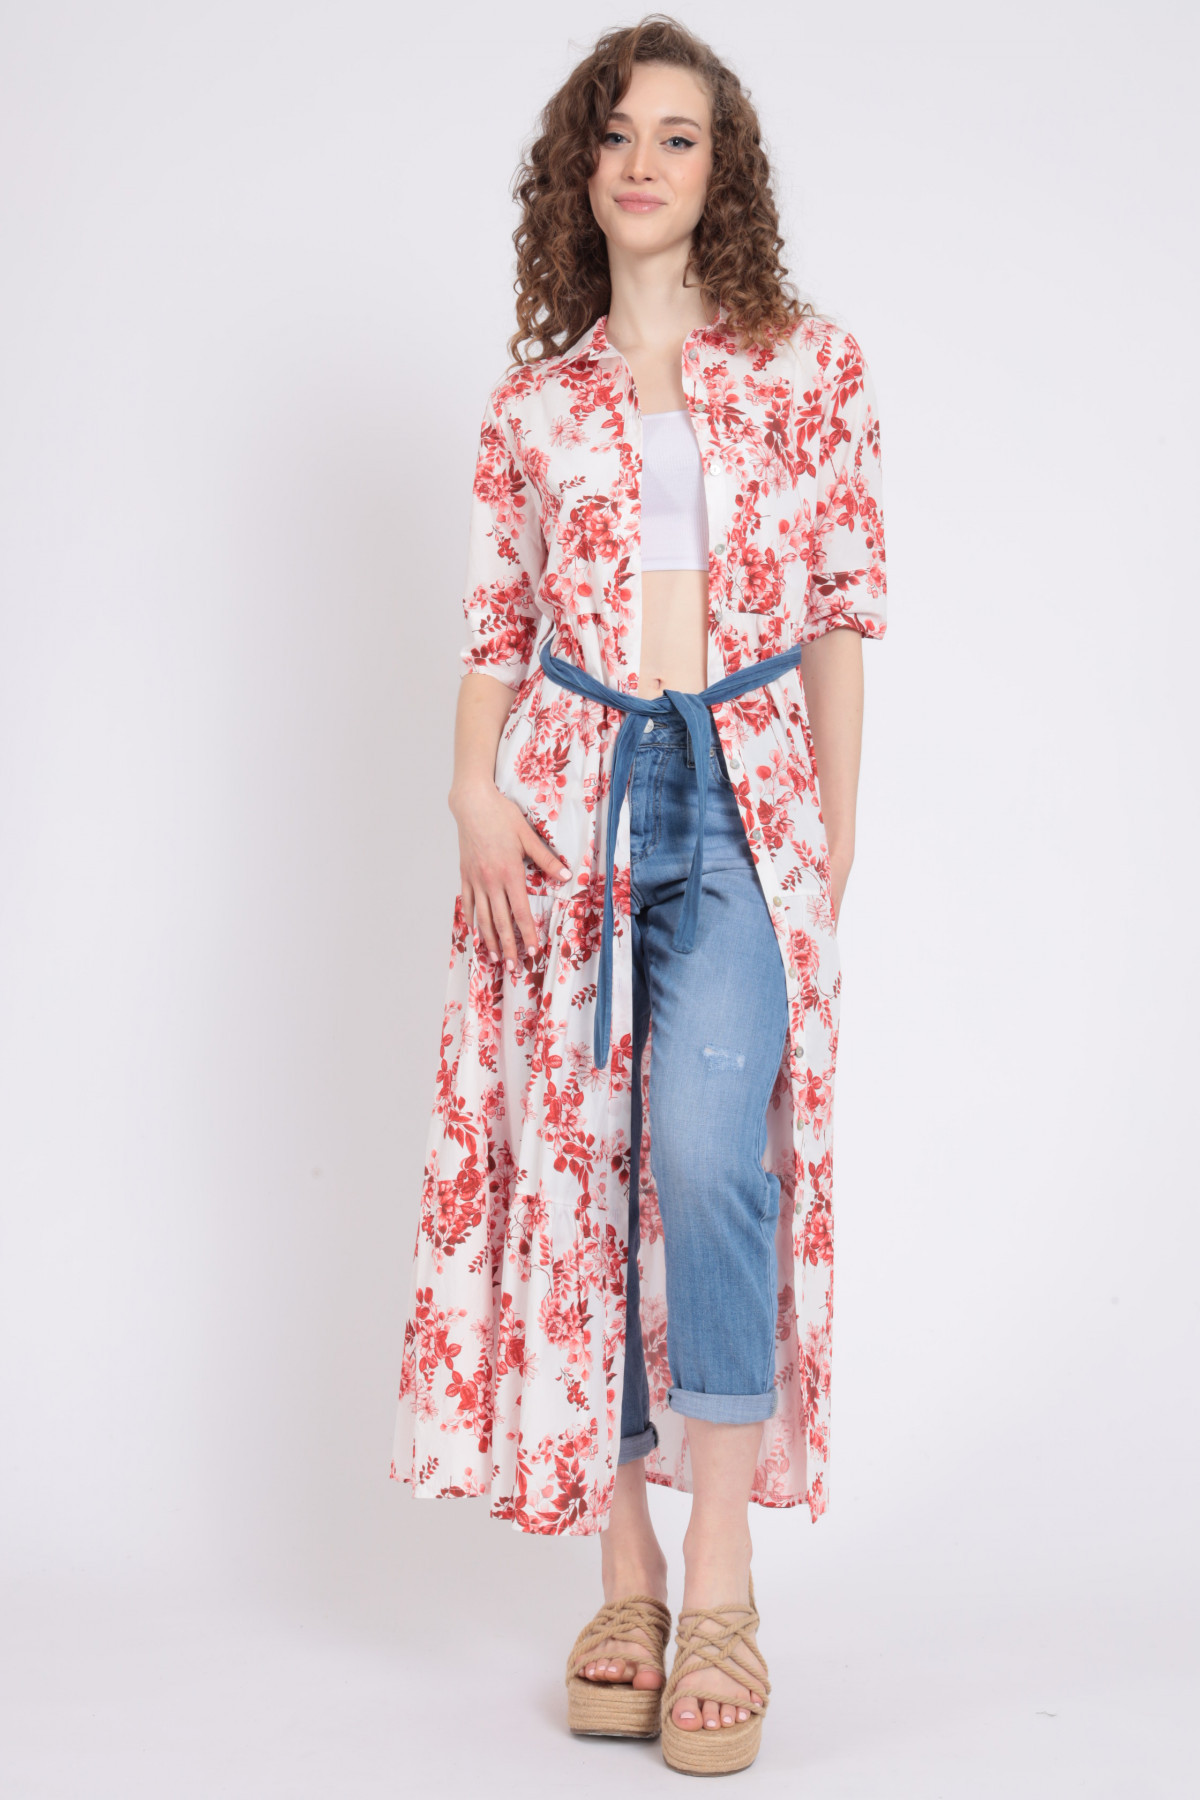 Floral Print Chemisier Dress with Chambray Belt